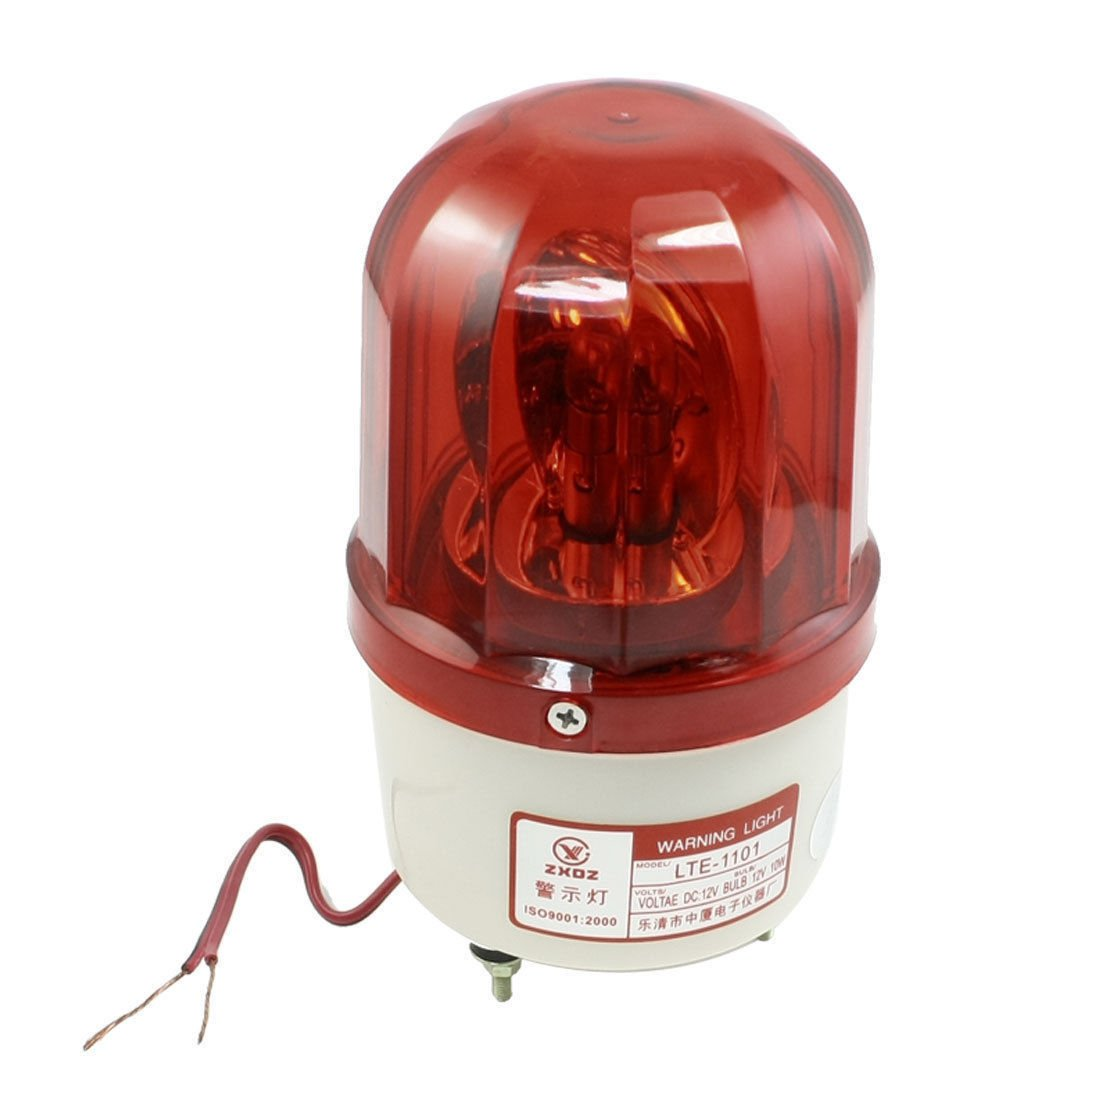 DC 12V 10W Industrial Safety Red Indicating Rotary Flash Warning Light